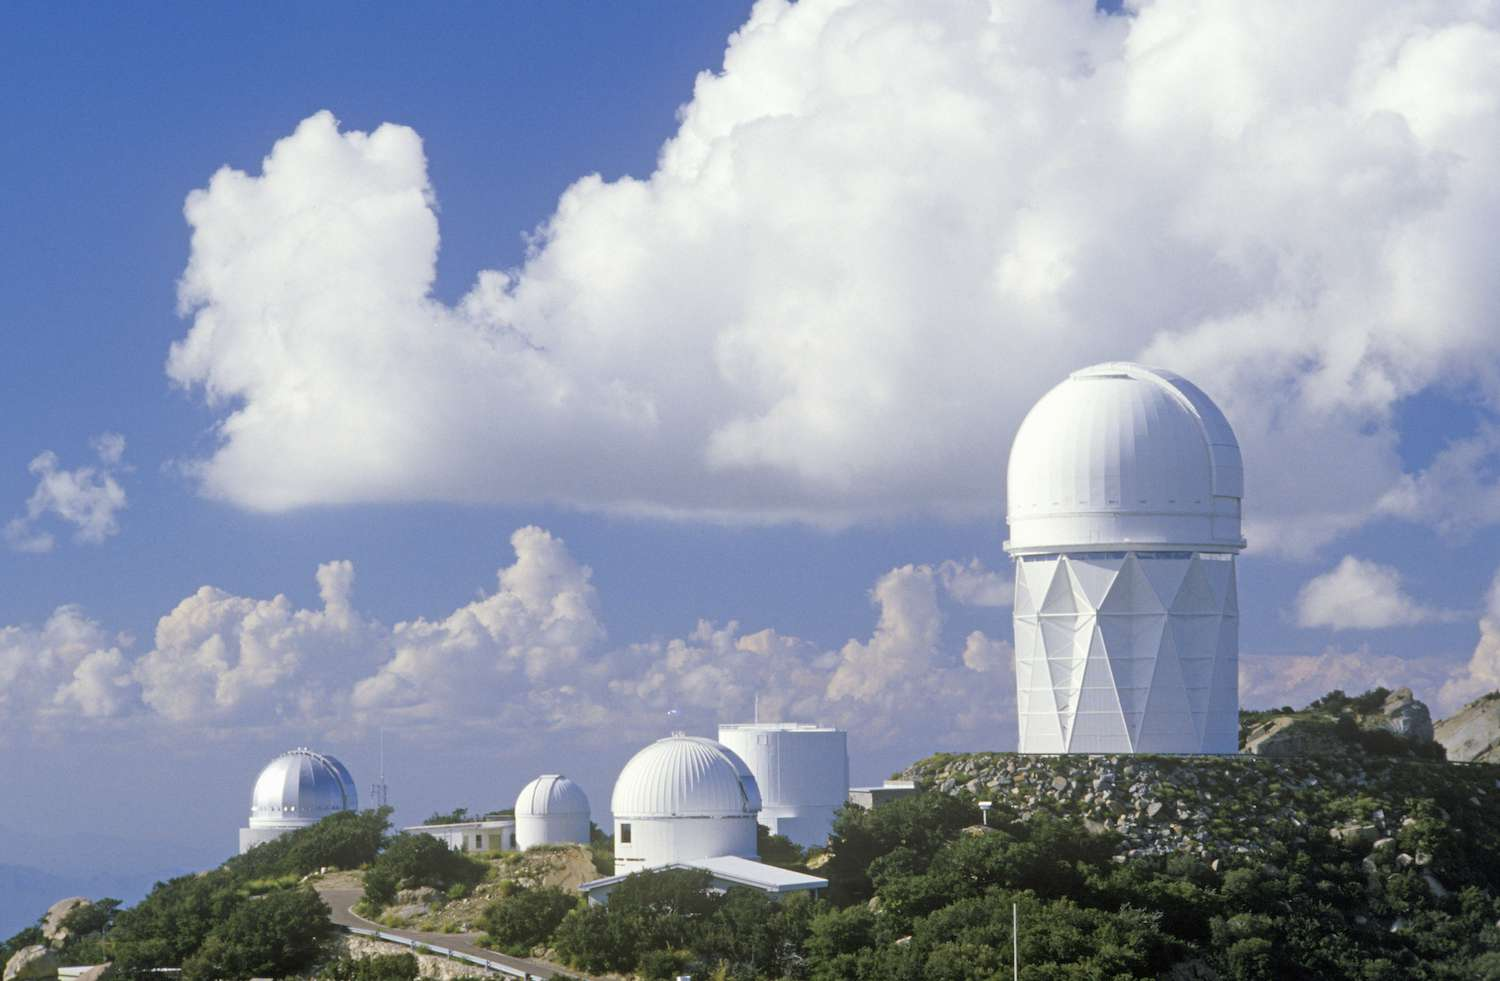 The collection of domes of Kitt Peak National Observatory on a cloudy day